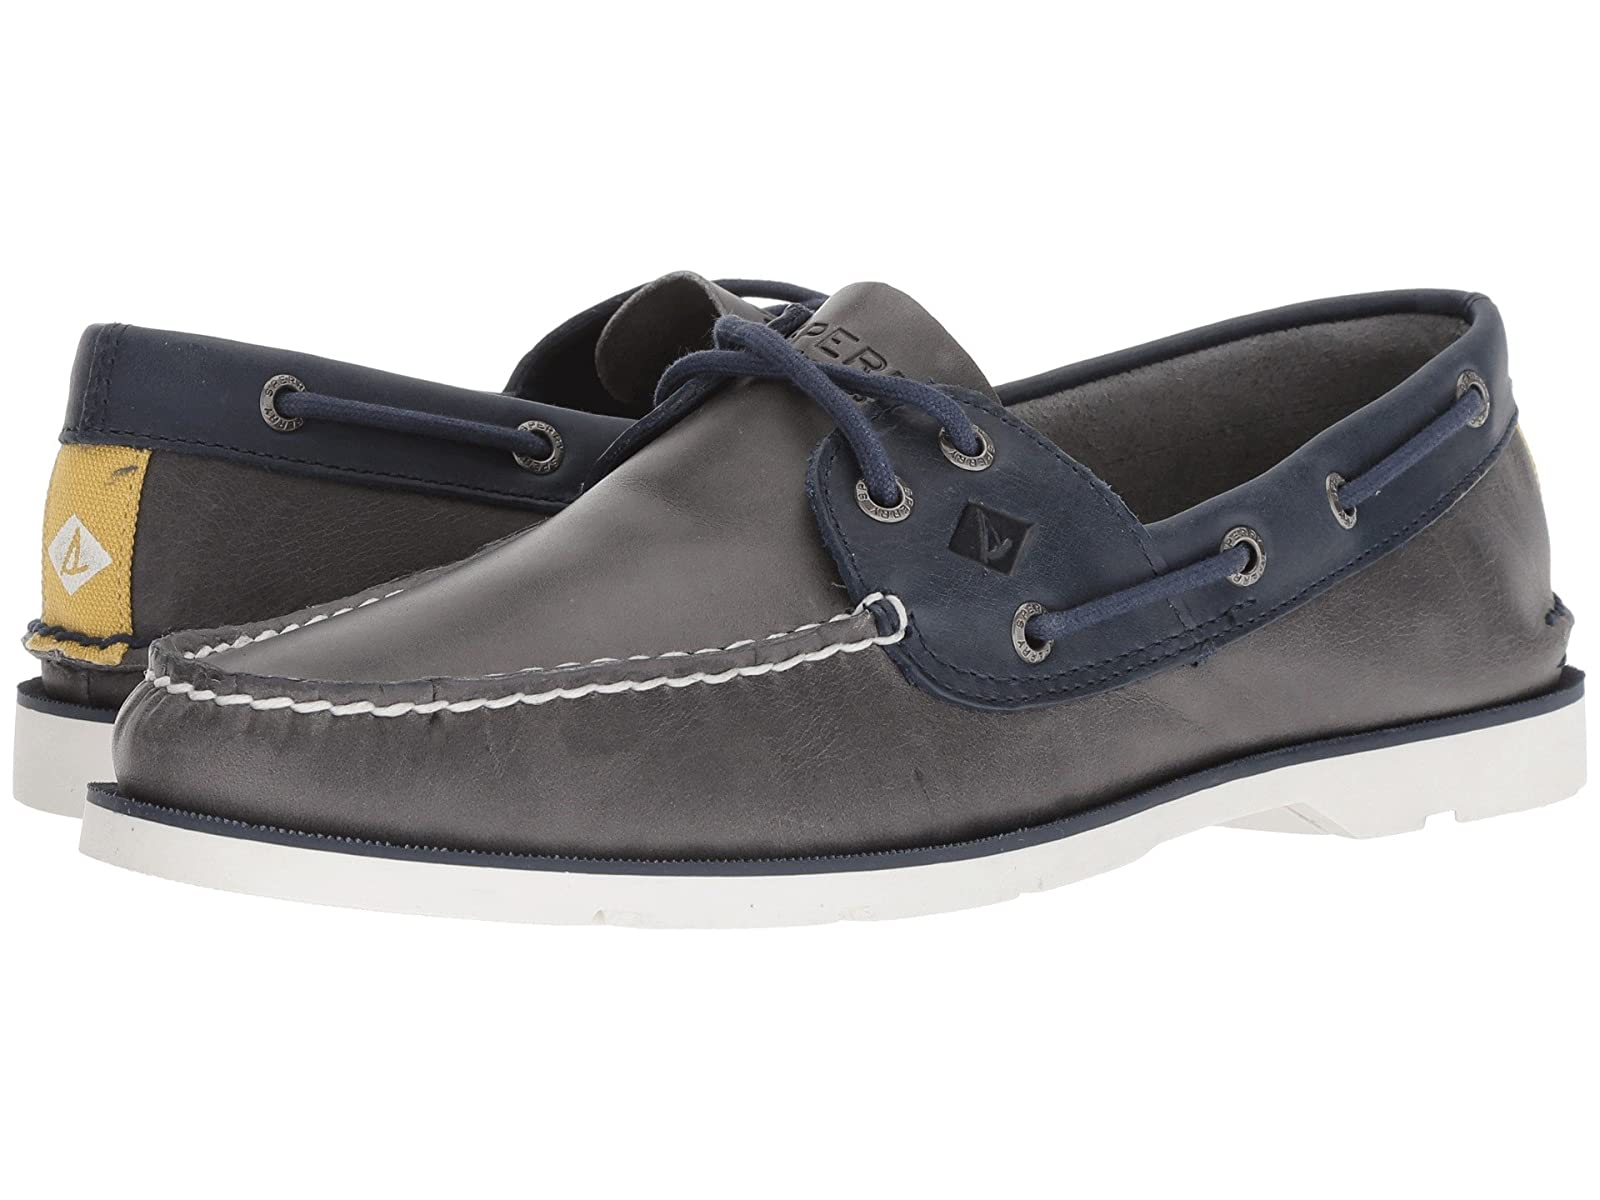 Sperry Leeward Two-Eye NauticalCheap and distinctive eye-catching shoes